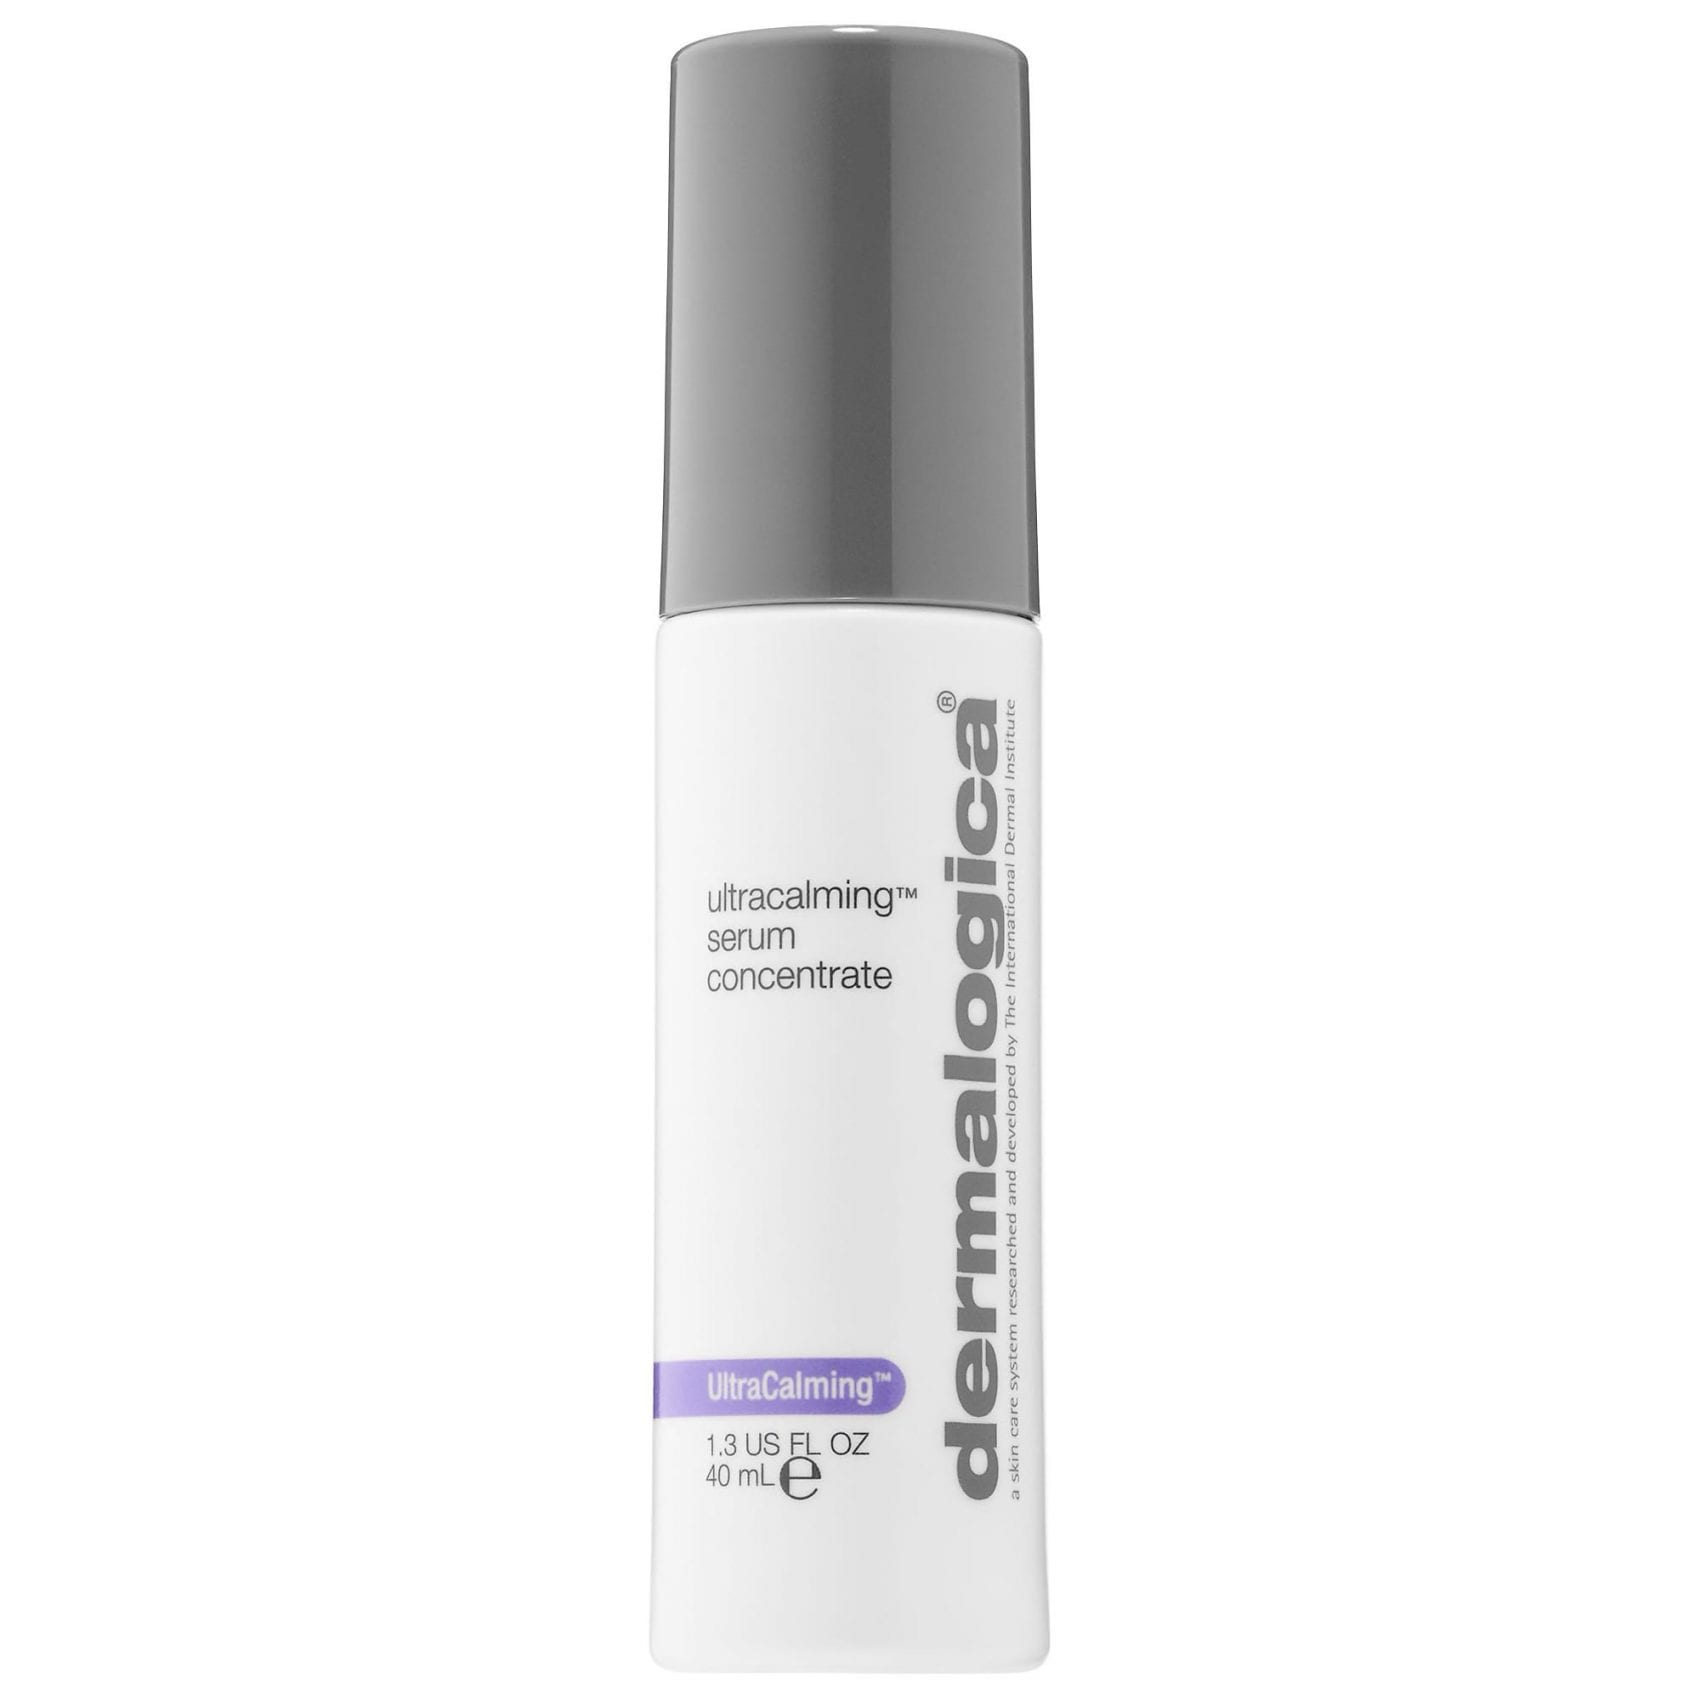 Dermalogica ultracalming serum